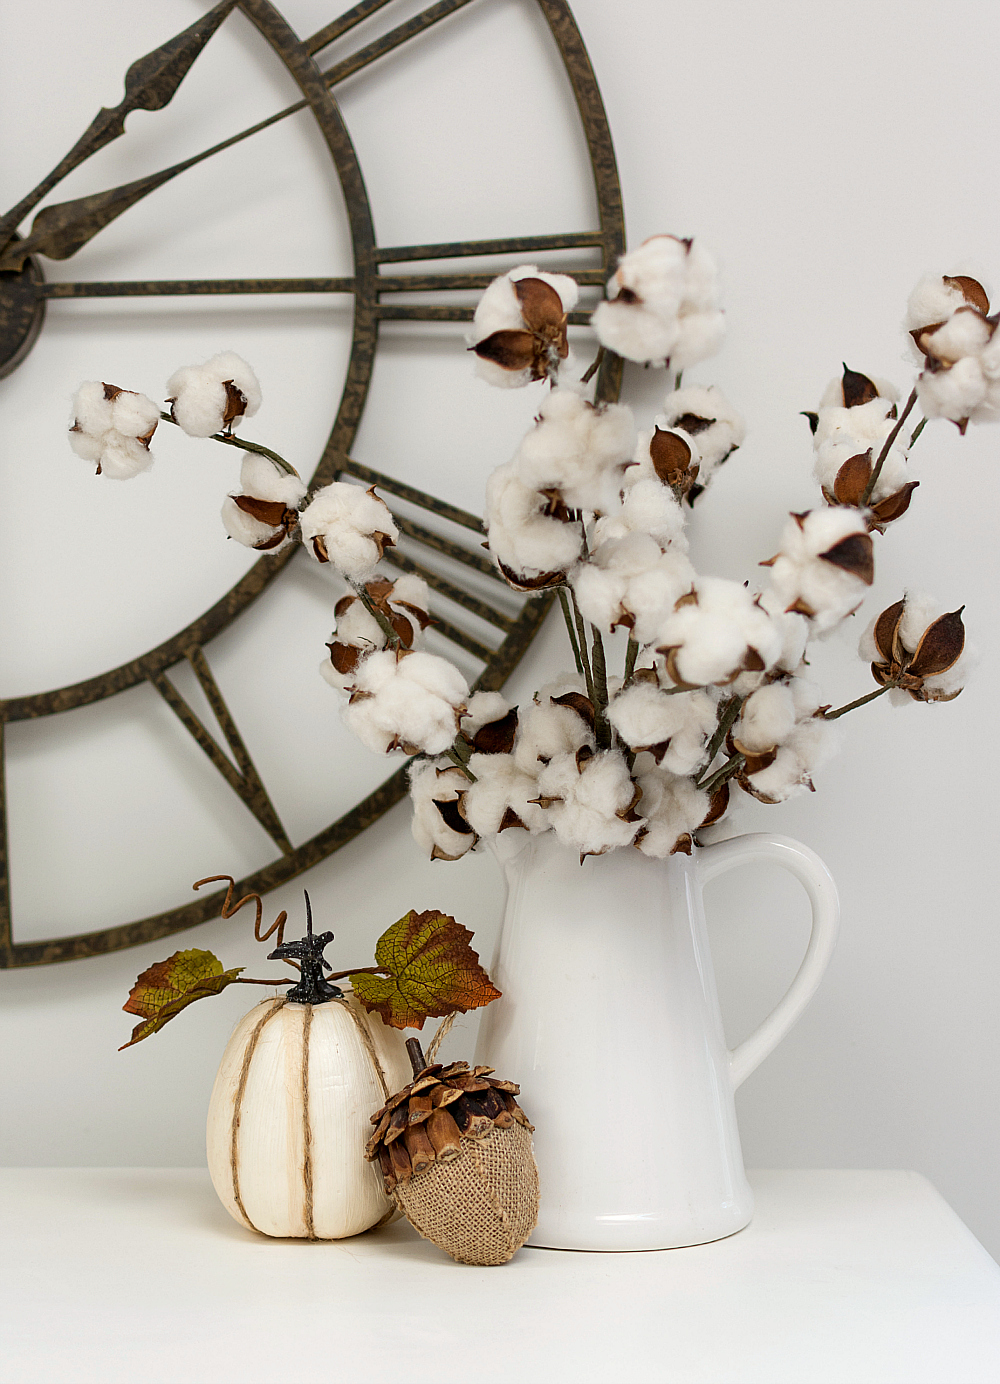 Cotton Stems in Vase